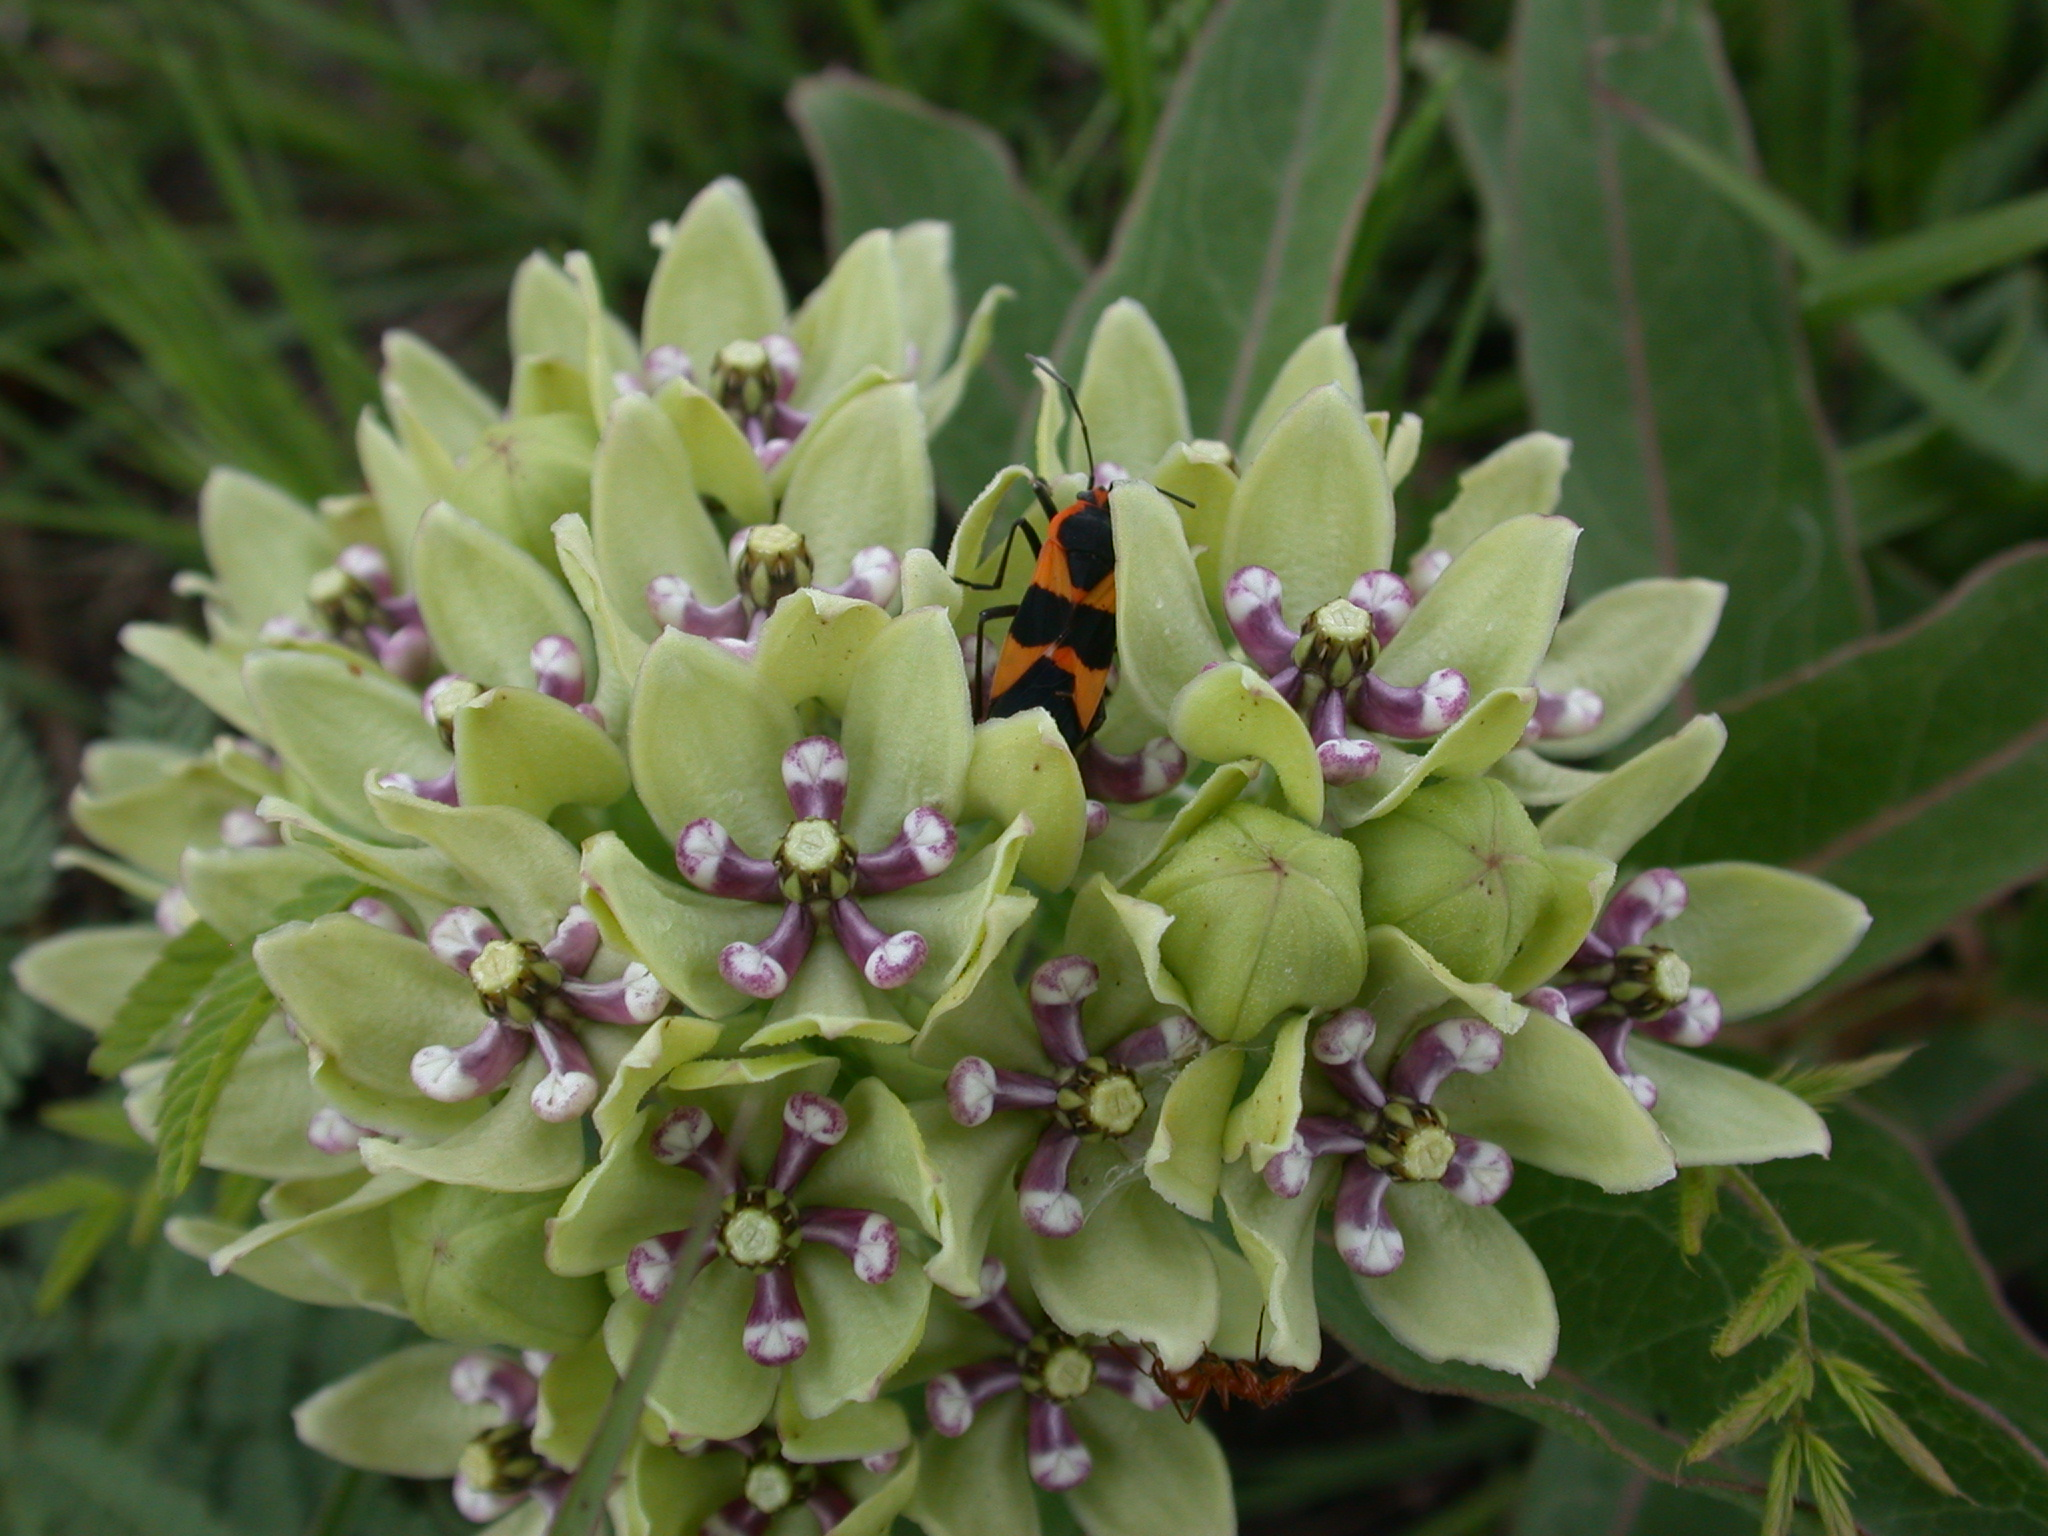 http://www.birdfriendlyhouston.org/wp-content/uploads/2017/01/Green-milkweed-and-milkweed-bug-by-Don-Verser-copy.jpg